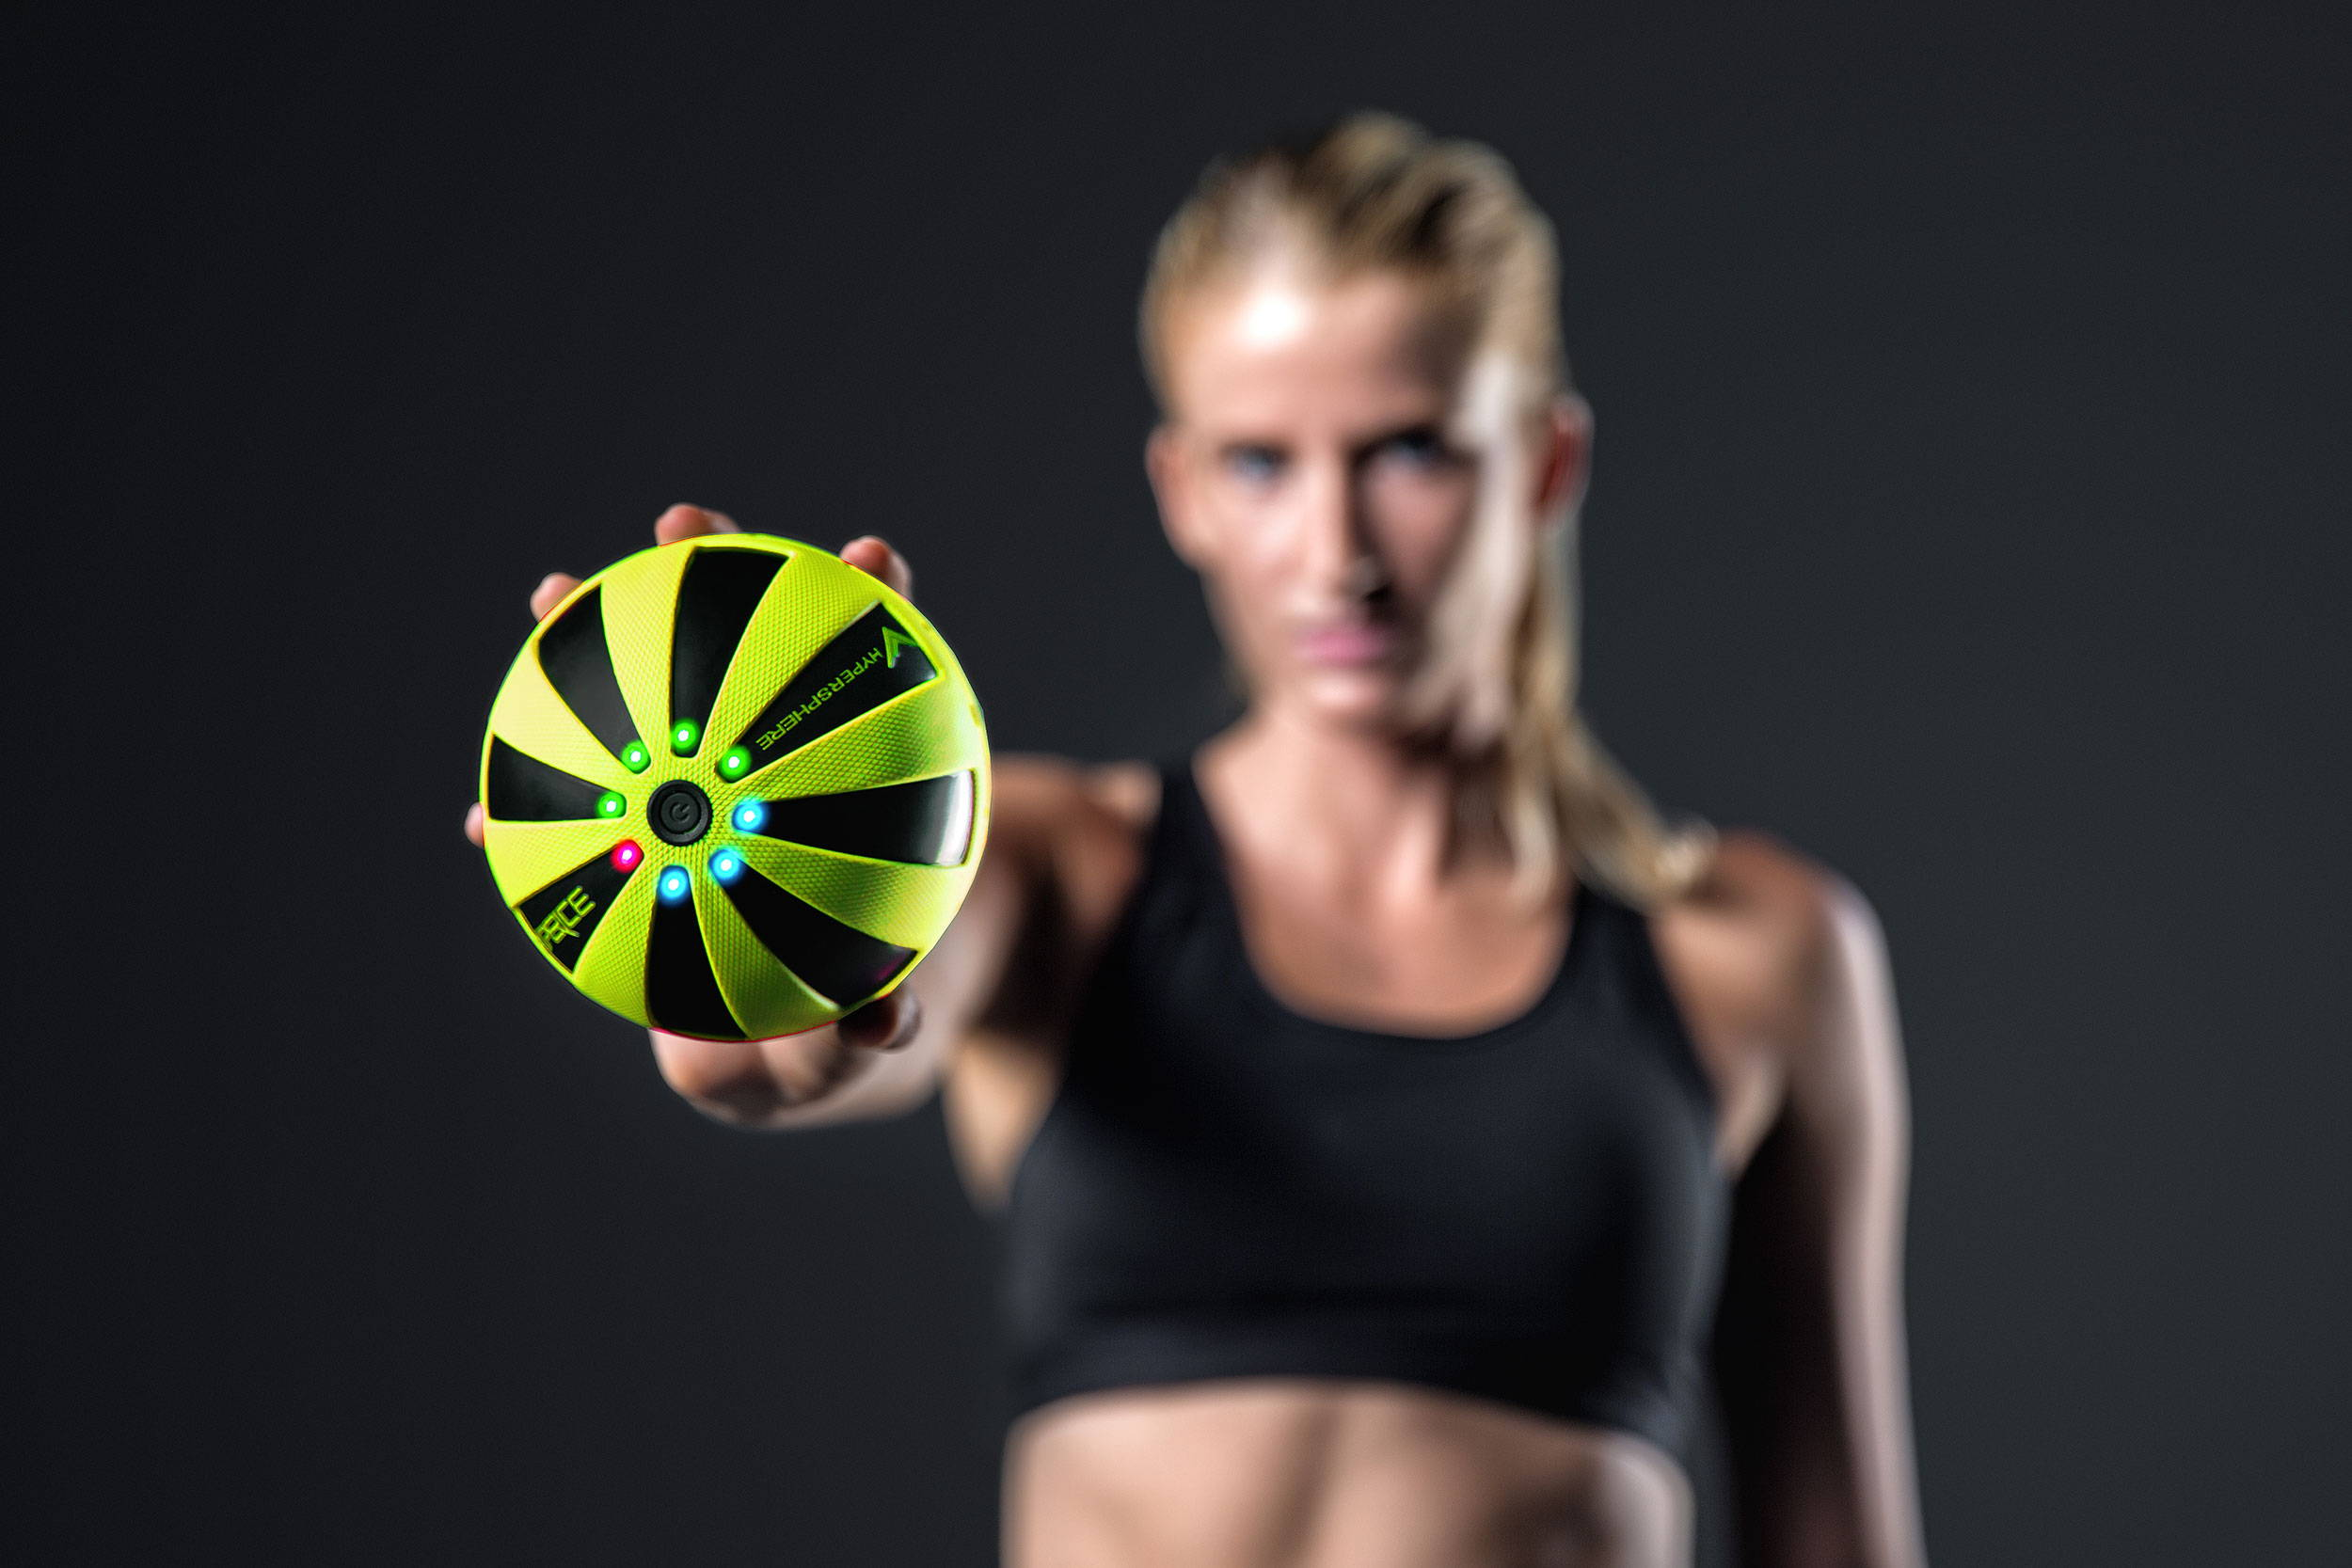 Woman holding Hyperice Hypersphere